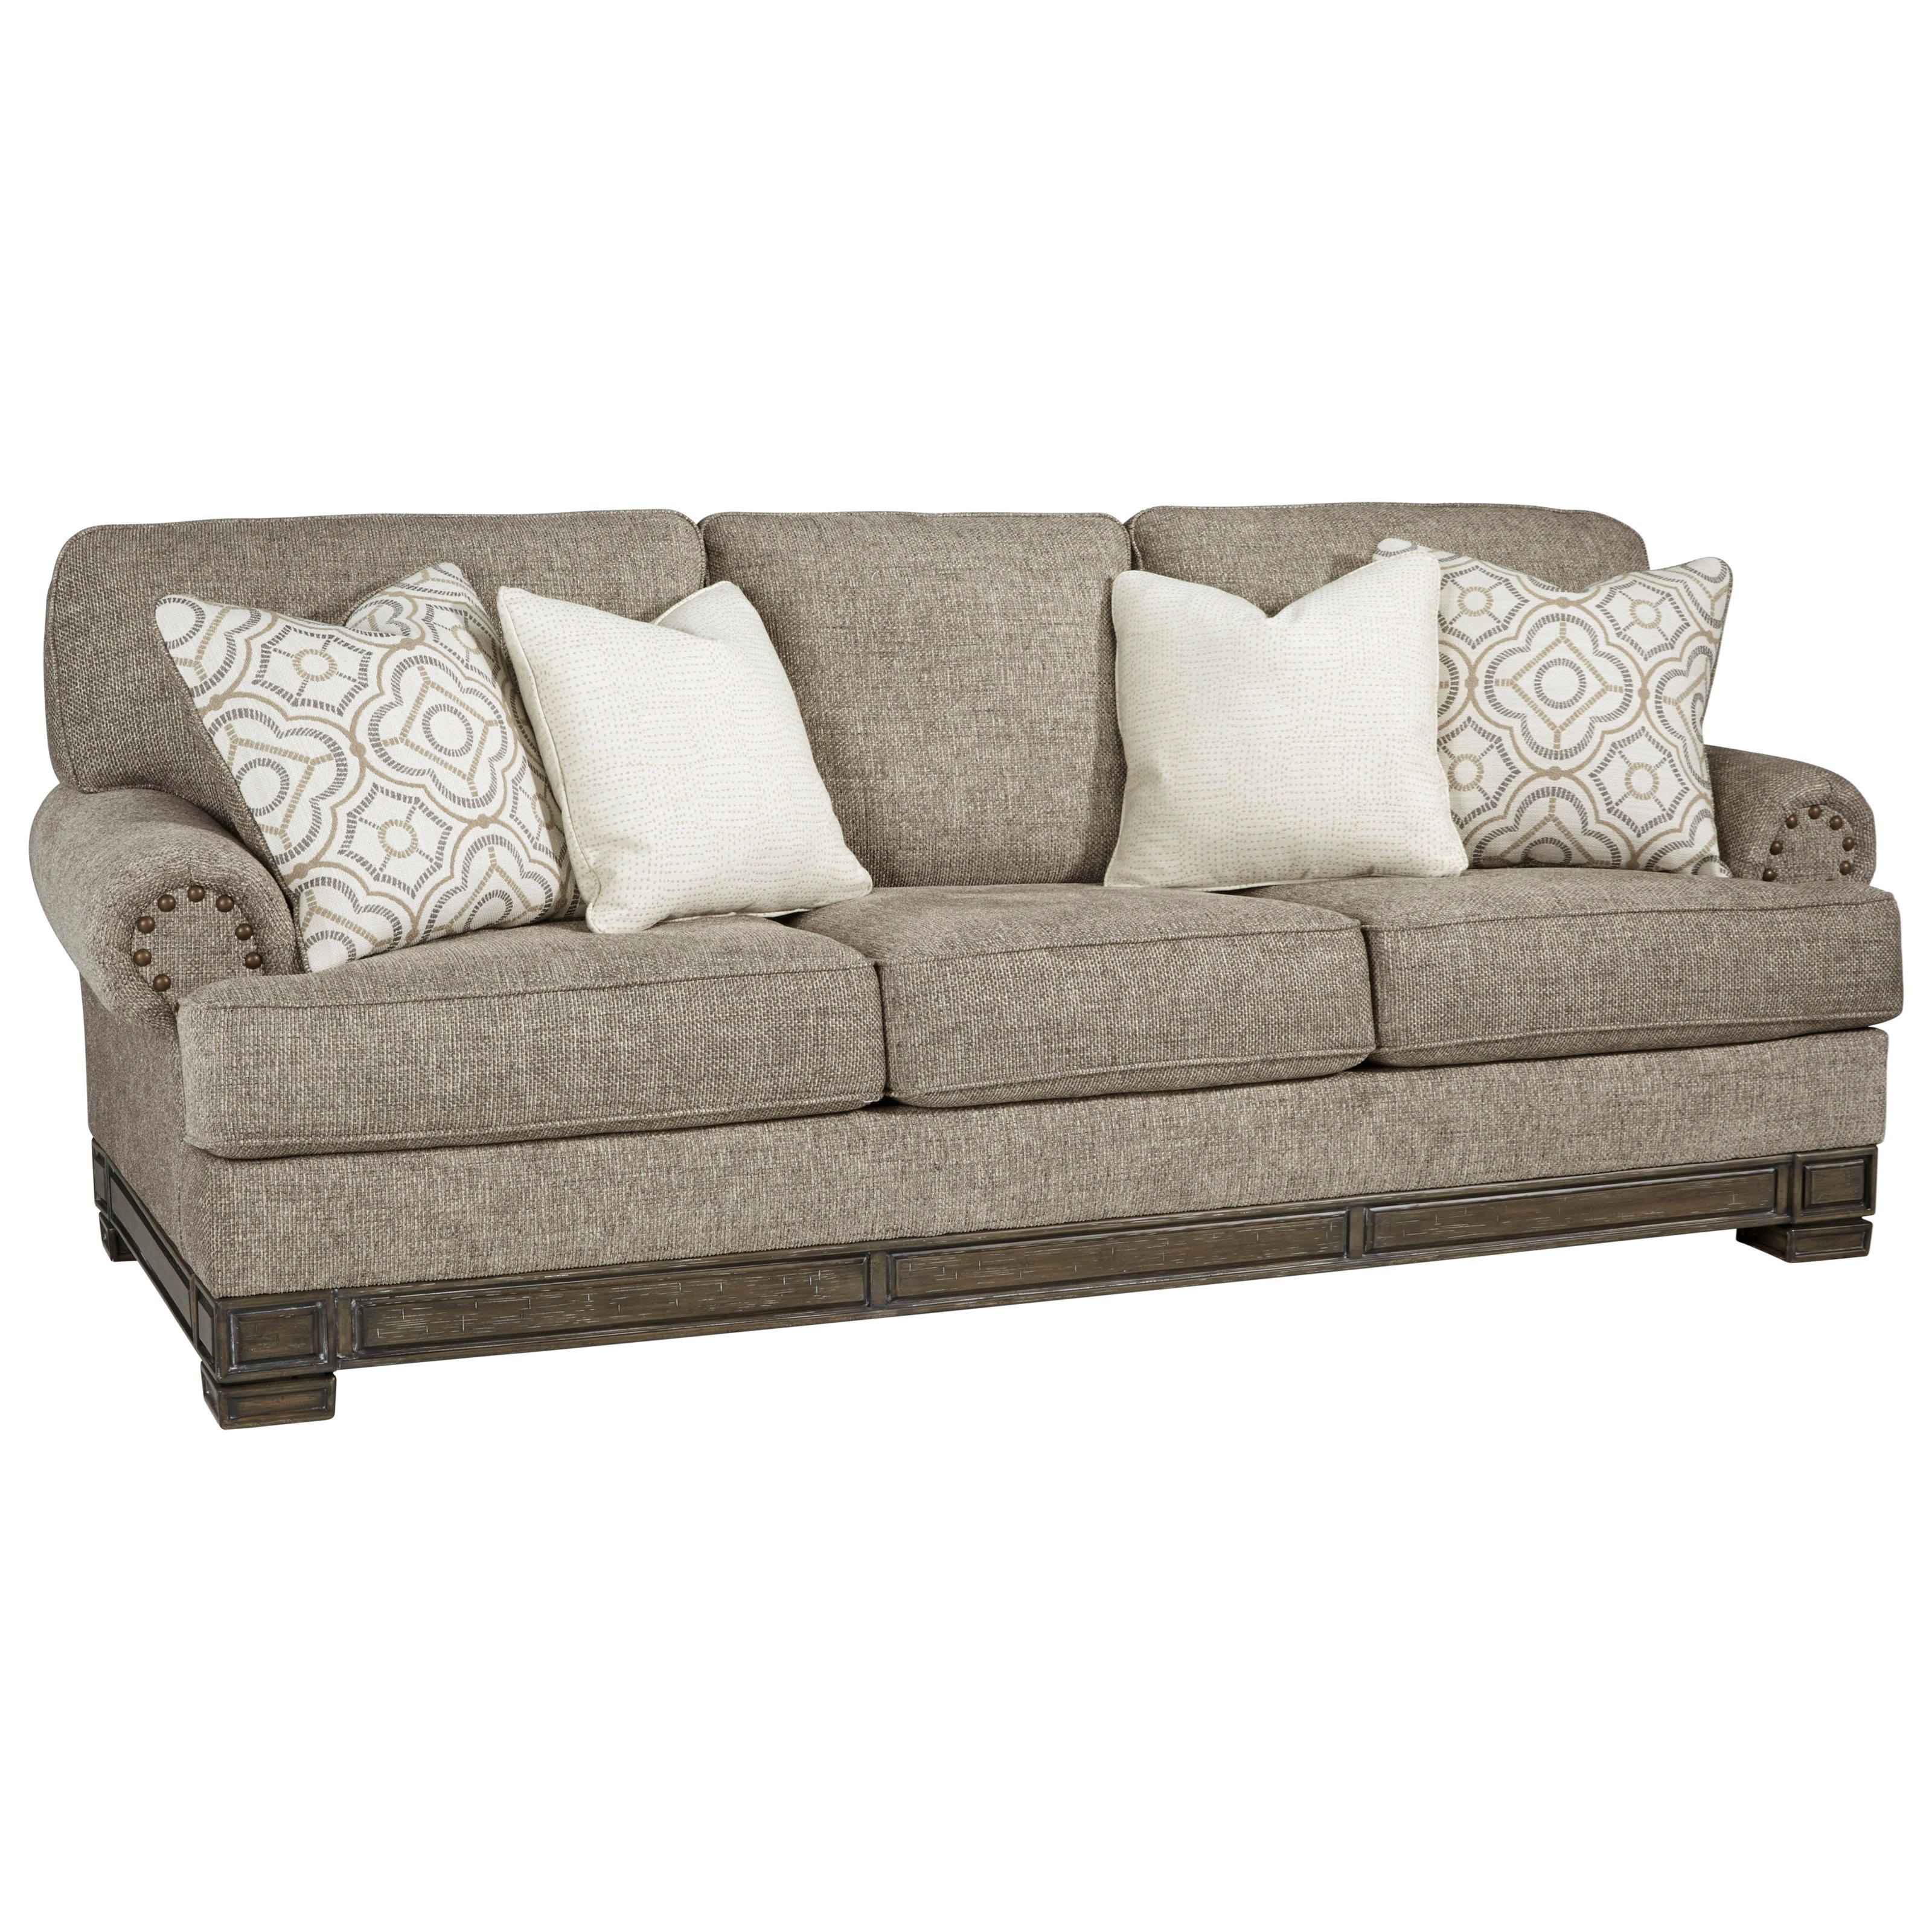 Einsgrove Sofa by Signature at Walker's Furniture